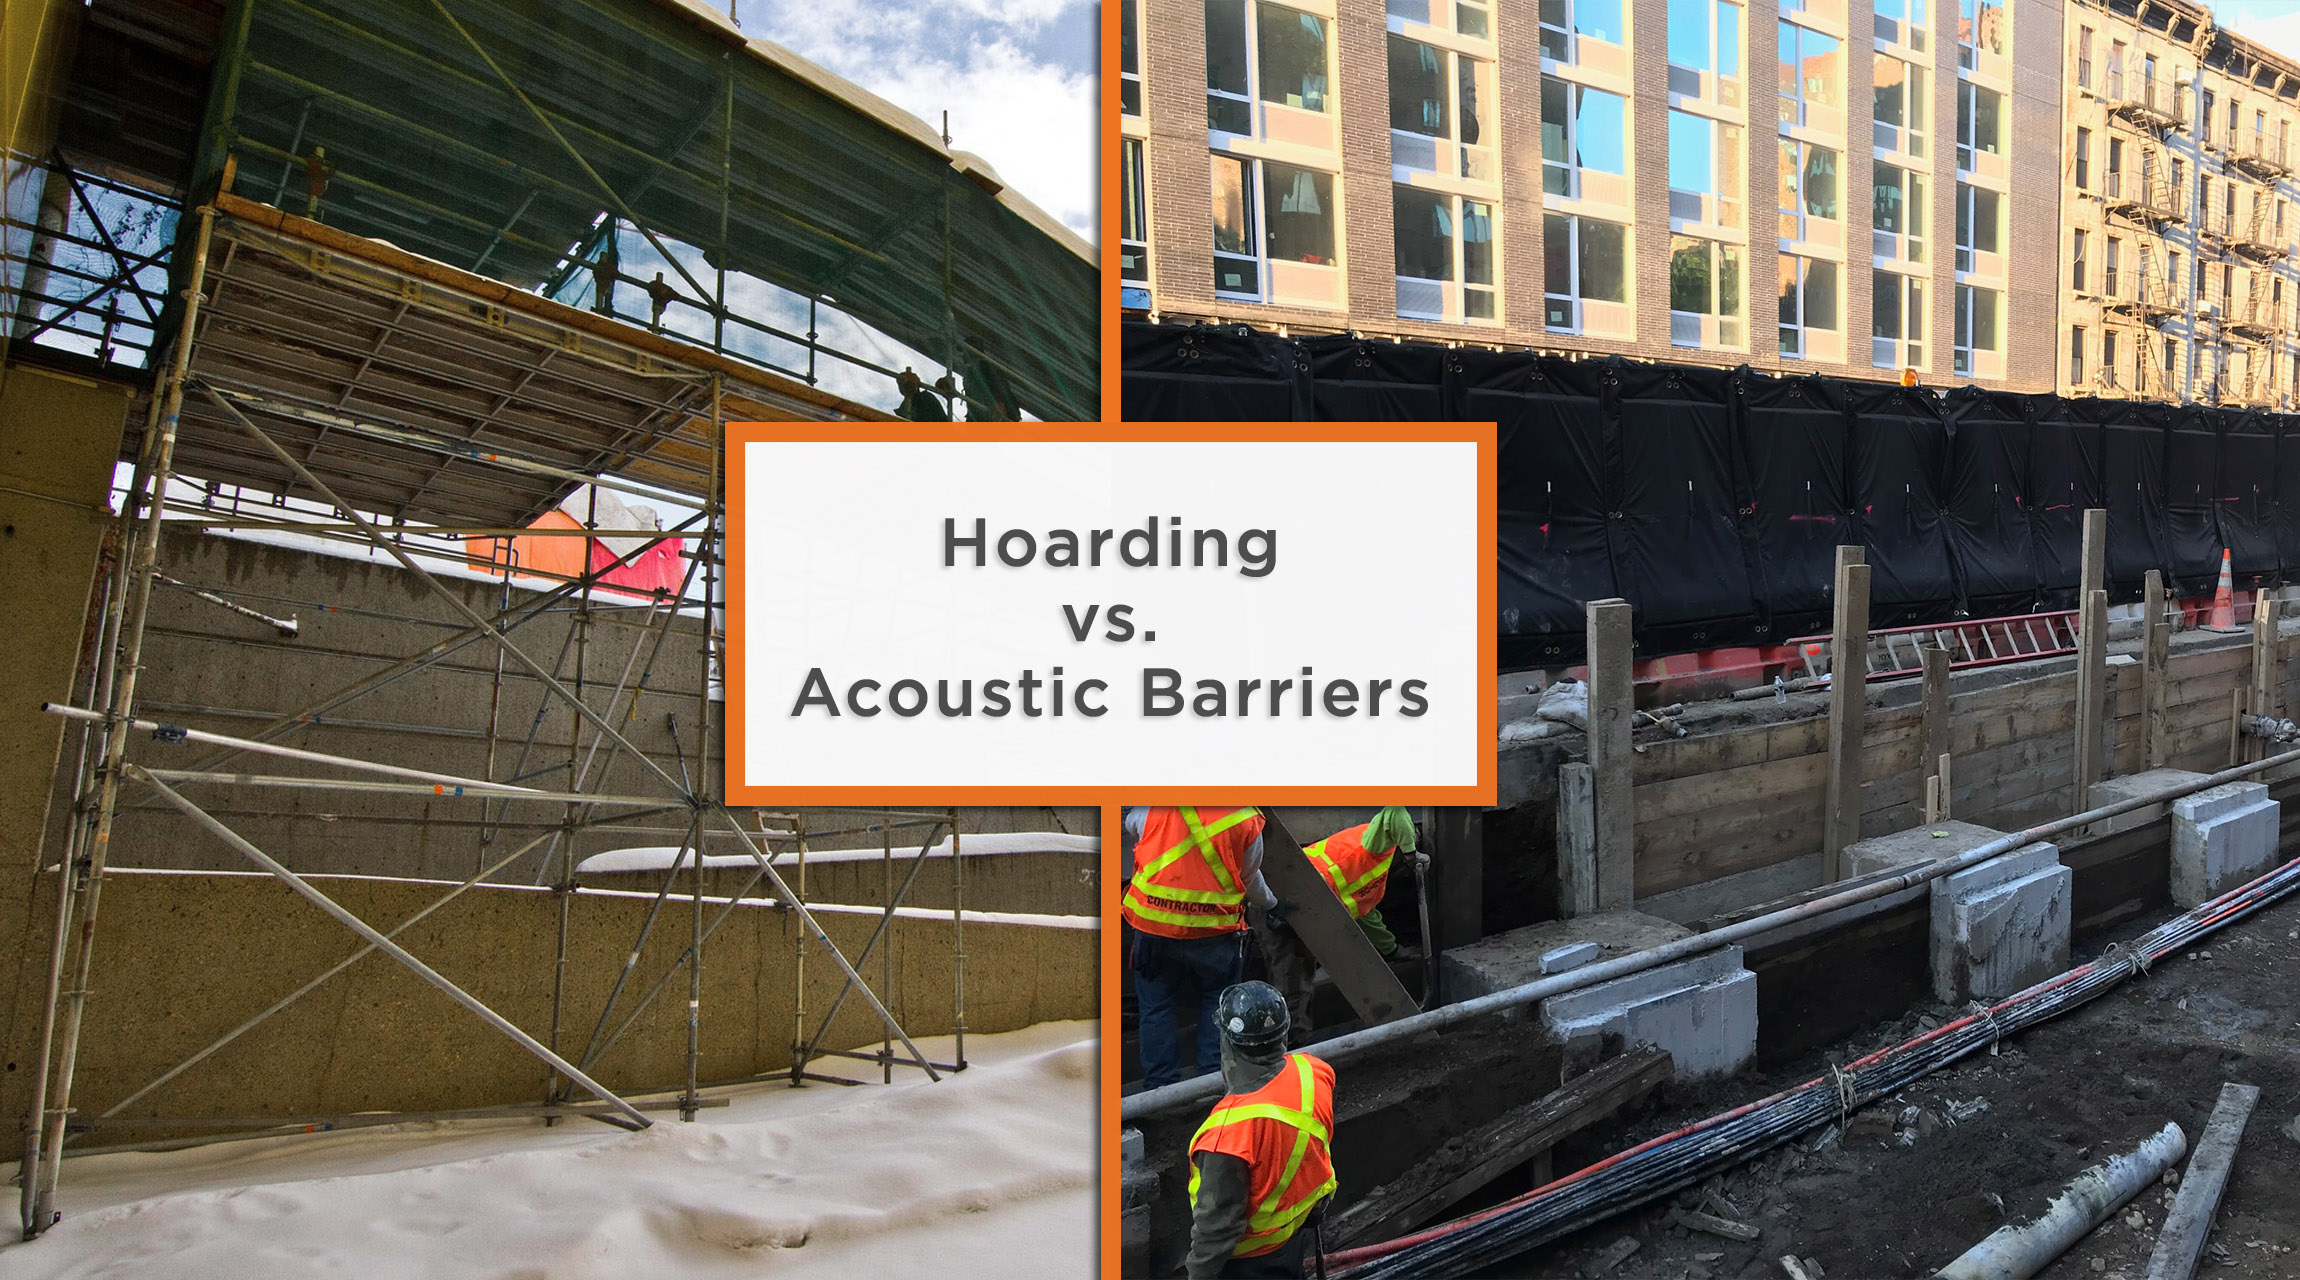 Hoarding vs. Acoustic Barriers